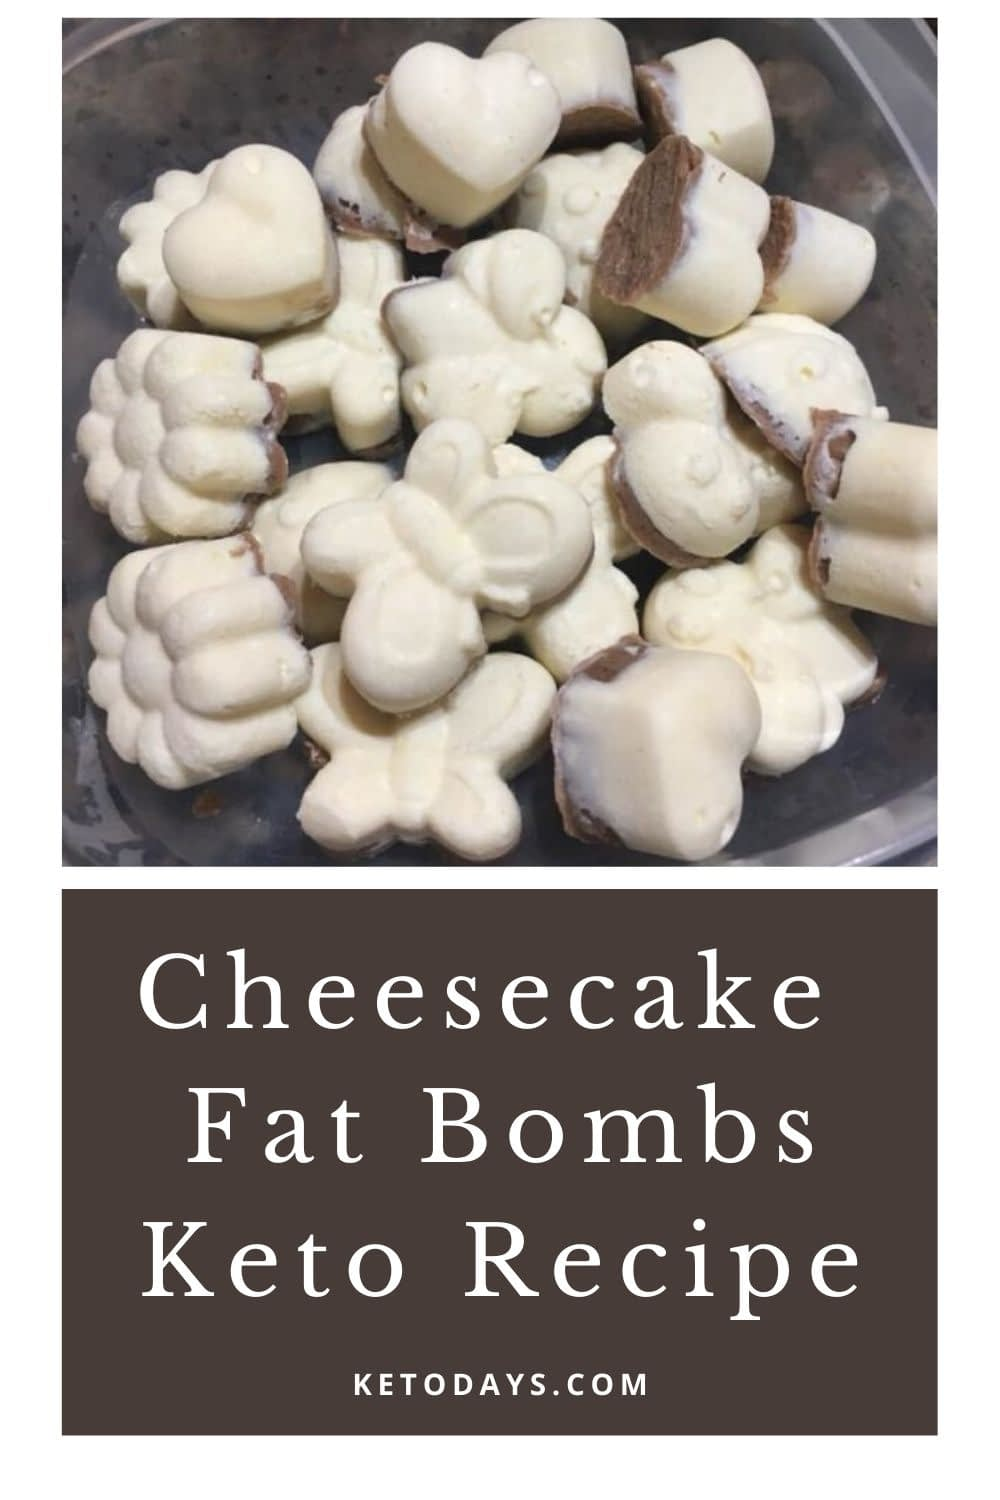 The perfect treat. These delicious fat bombs are filling, high in fat content, and low in carbs and protein. The perfect addition to any day.